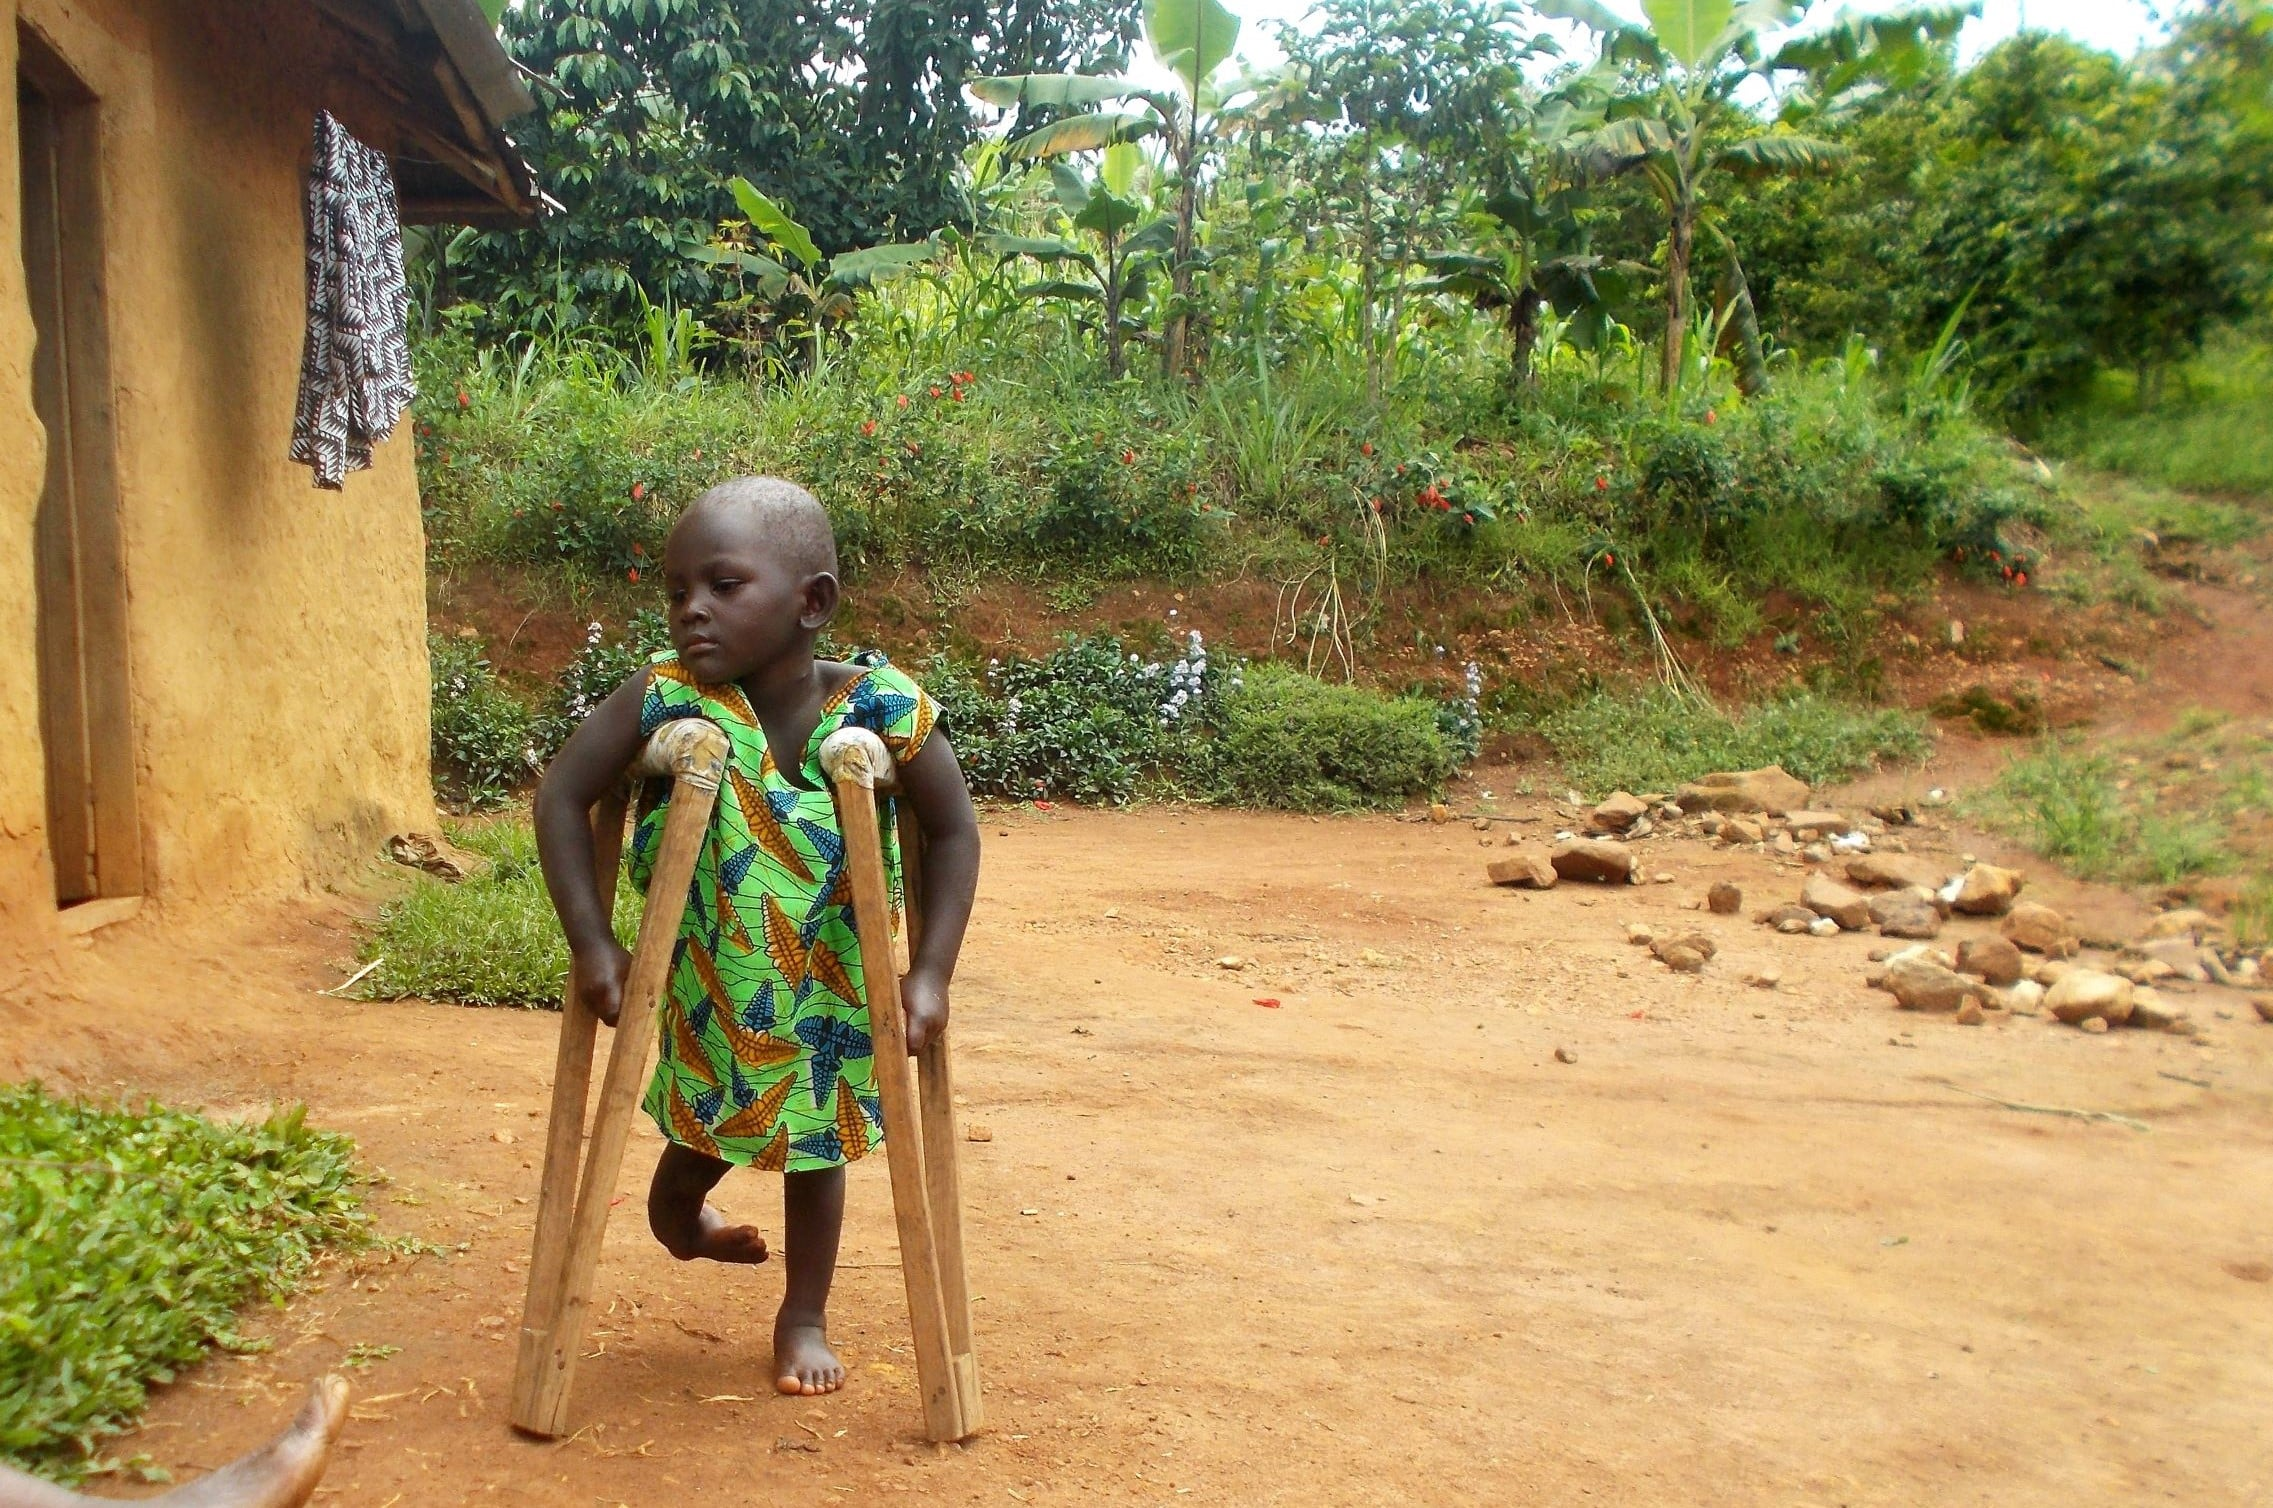 A girl with disabilities in Rukungiri using wooden walking sticks